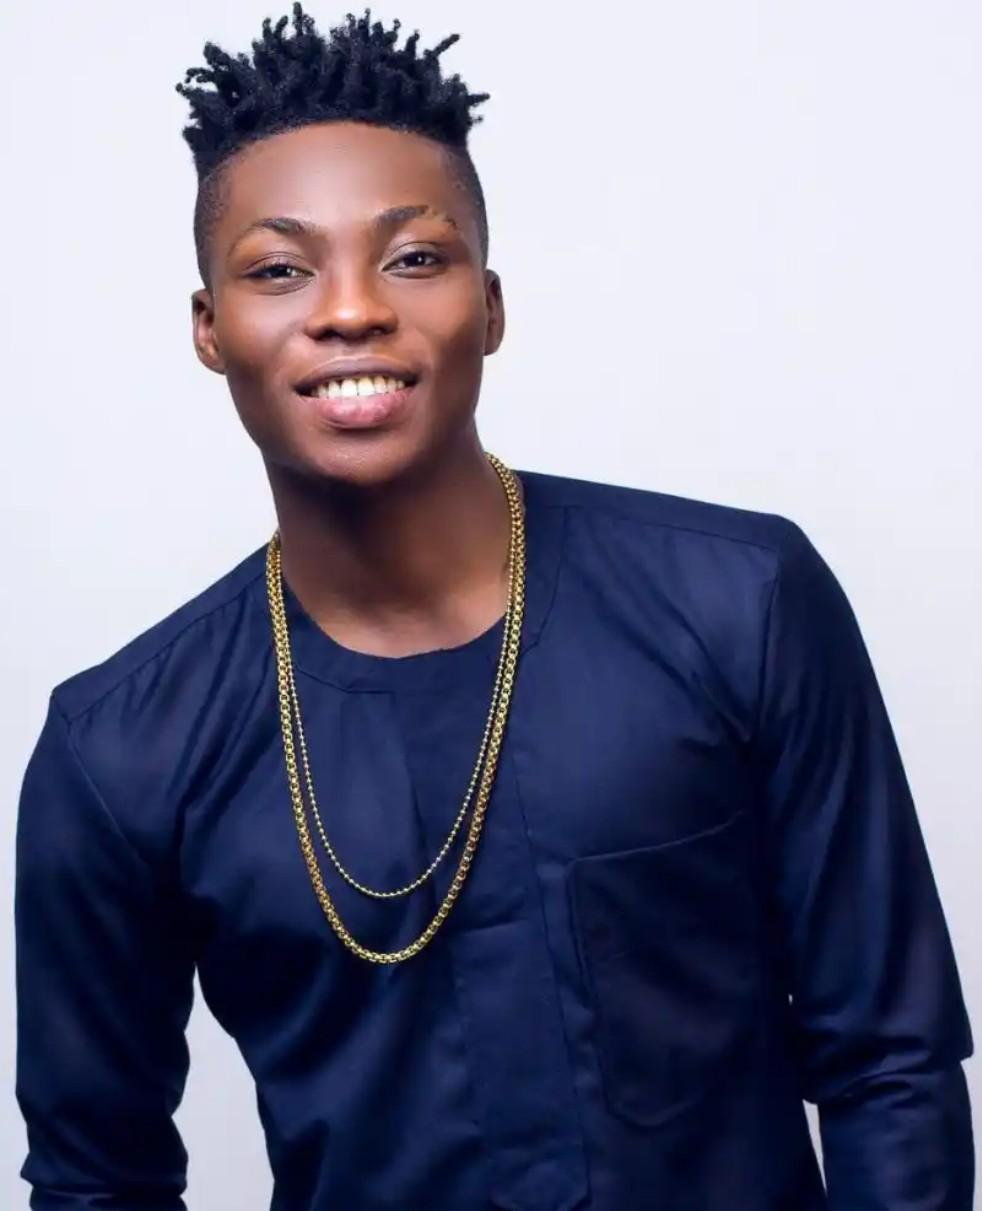 Wizkid Disrespected Me - Reekado Banks Finally Speaks On Wizkid Calling Him An Animal